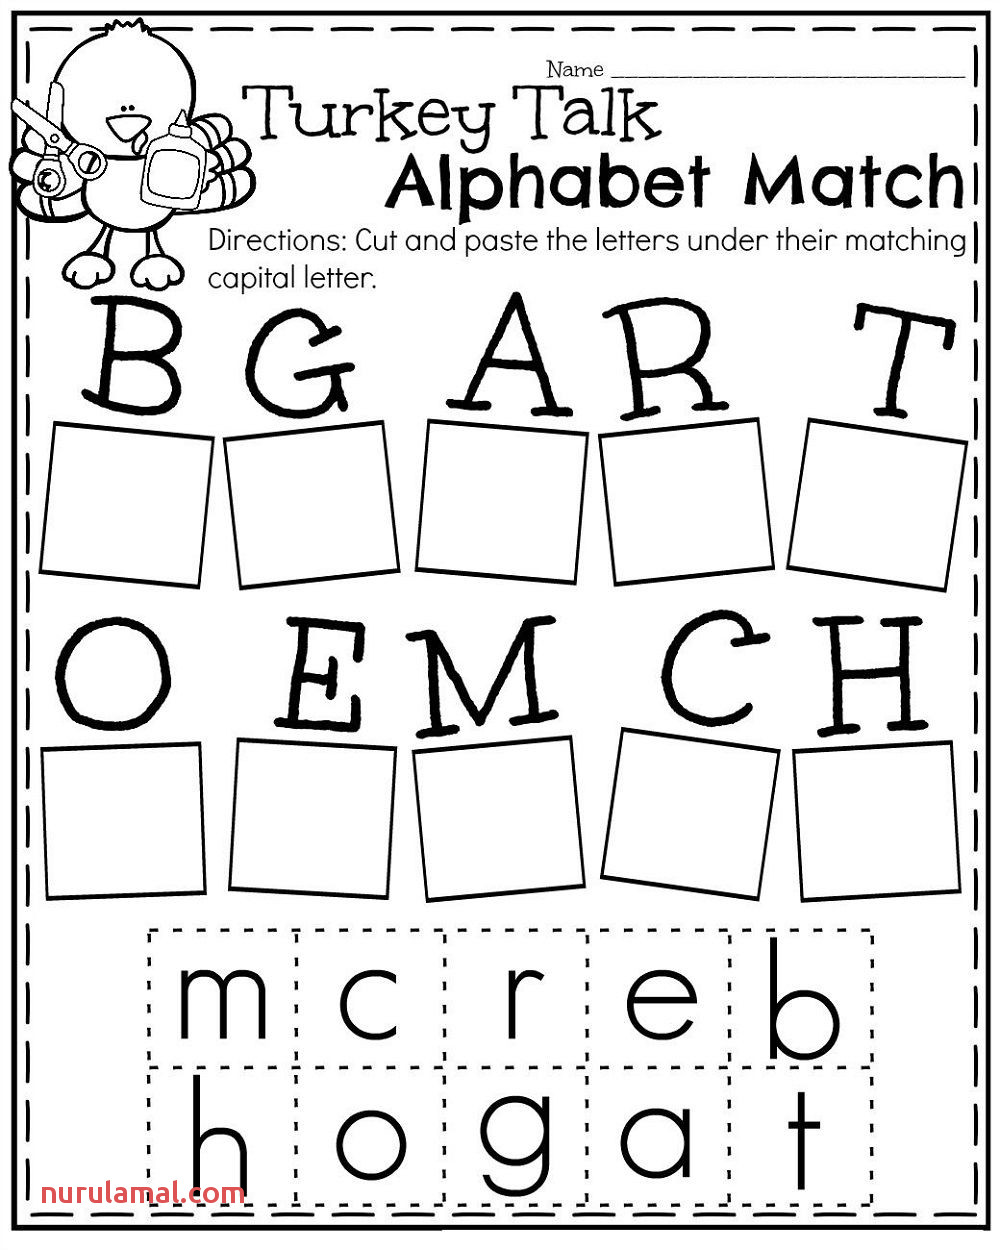 Guide Your Child to Learn His Lowercase Handwriting with